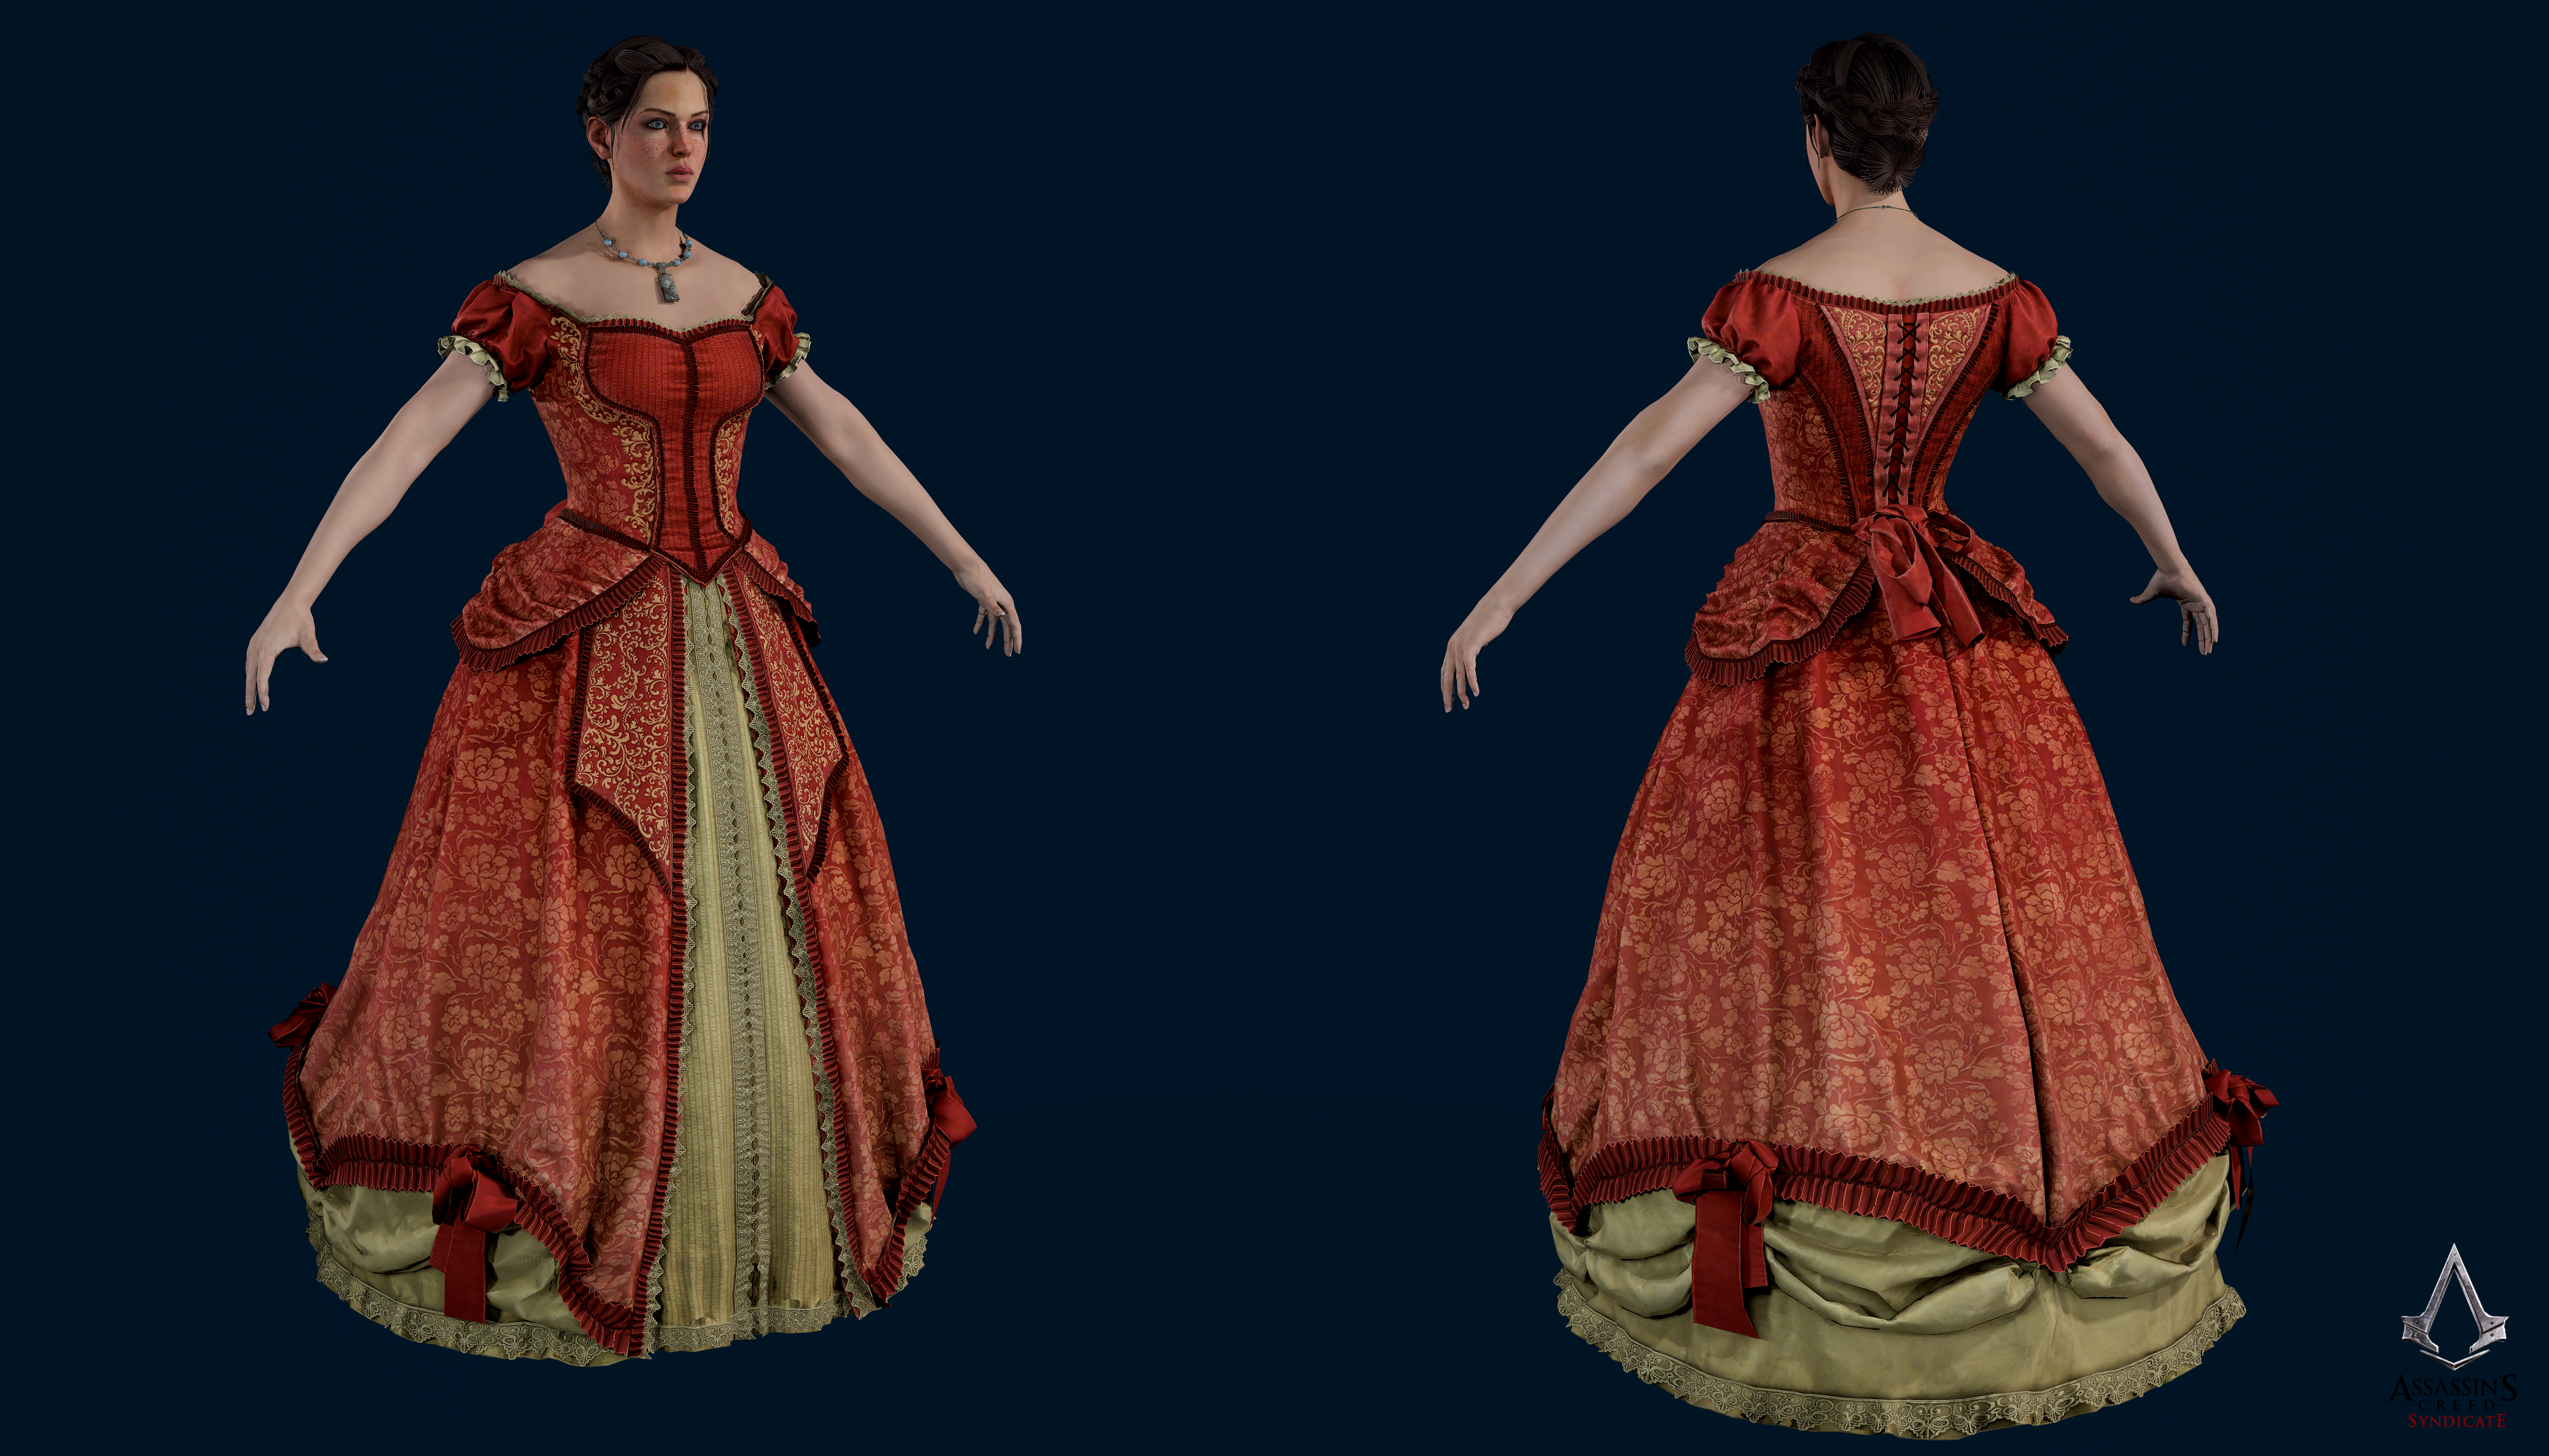 Assassins Creed Syndicate Evie Frye Formal Dress By Crazy31139